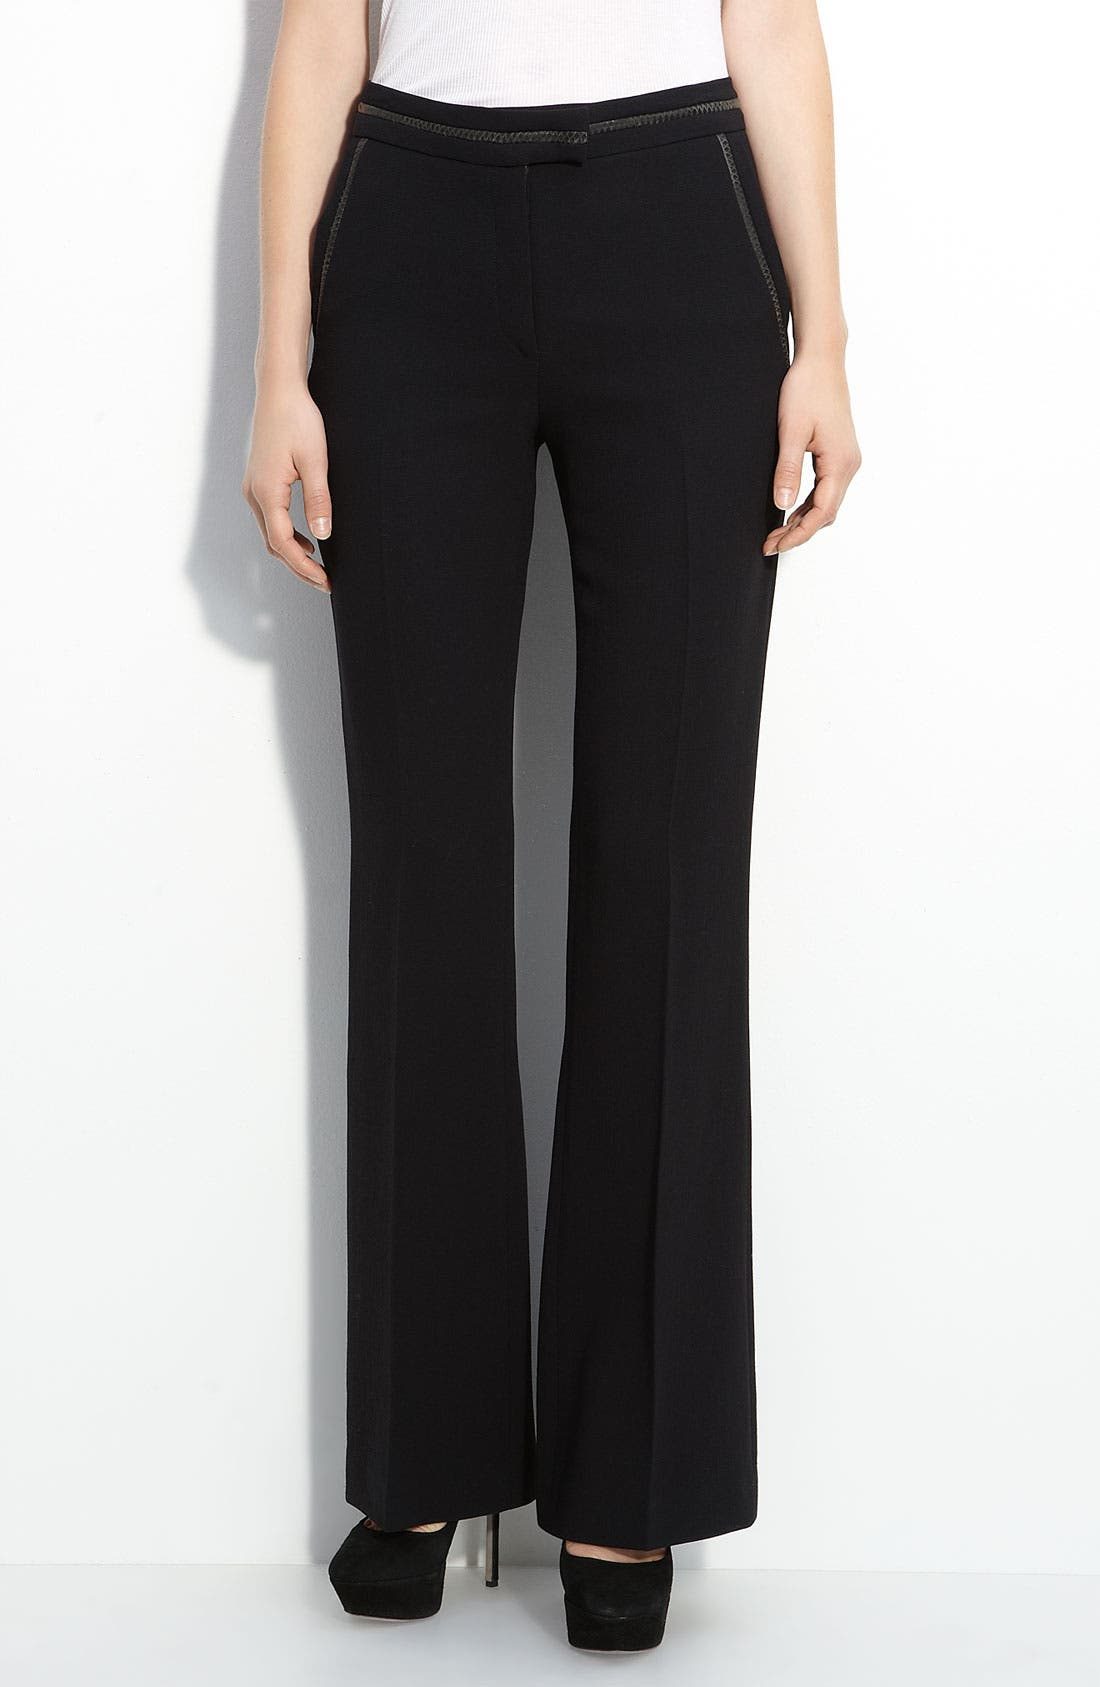 Main Image - Elizabeth and James 'Amelia' Flare Leg Wool Blend Trousers